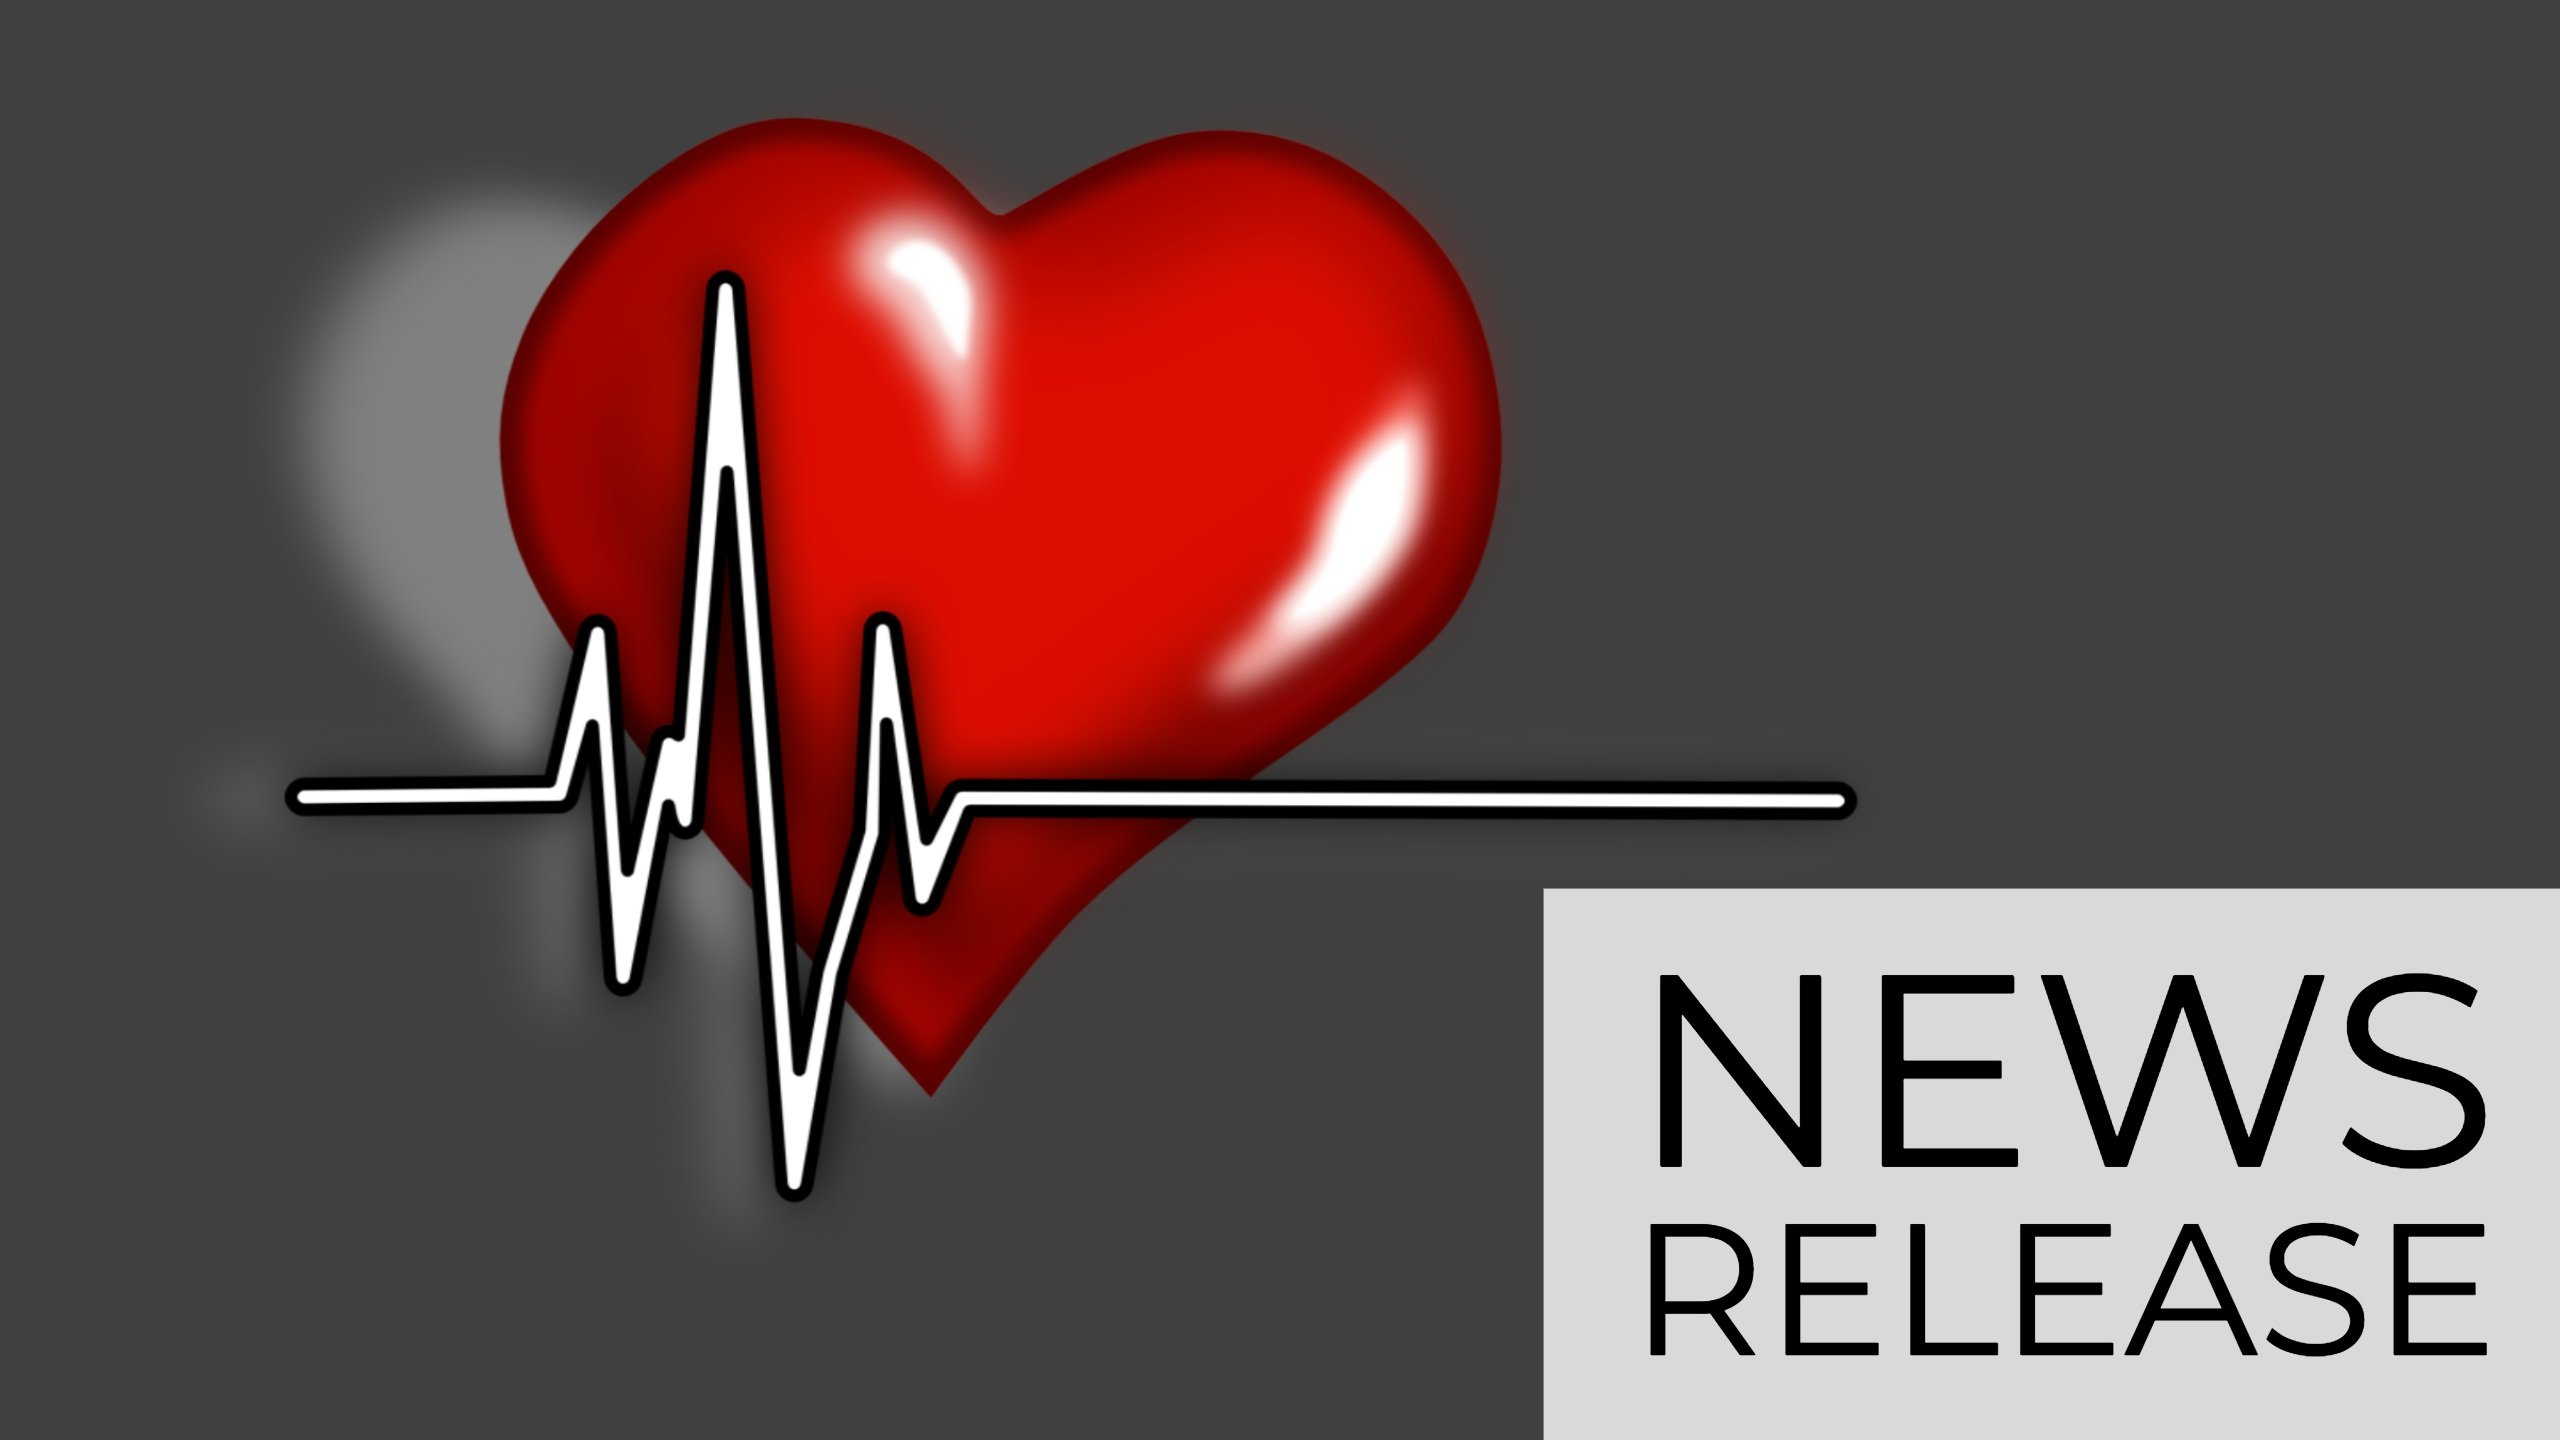 Redivus Health adds heart attack module